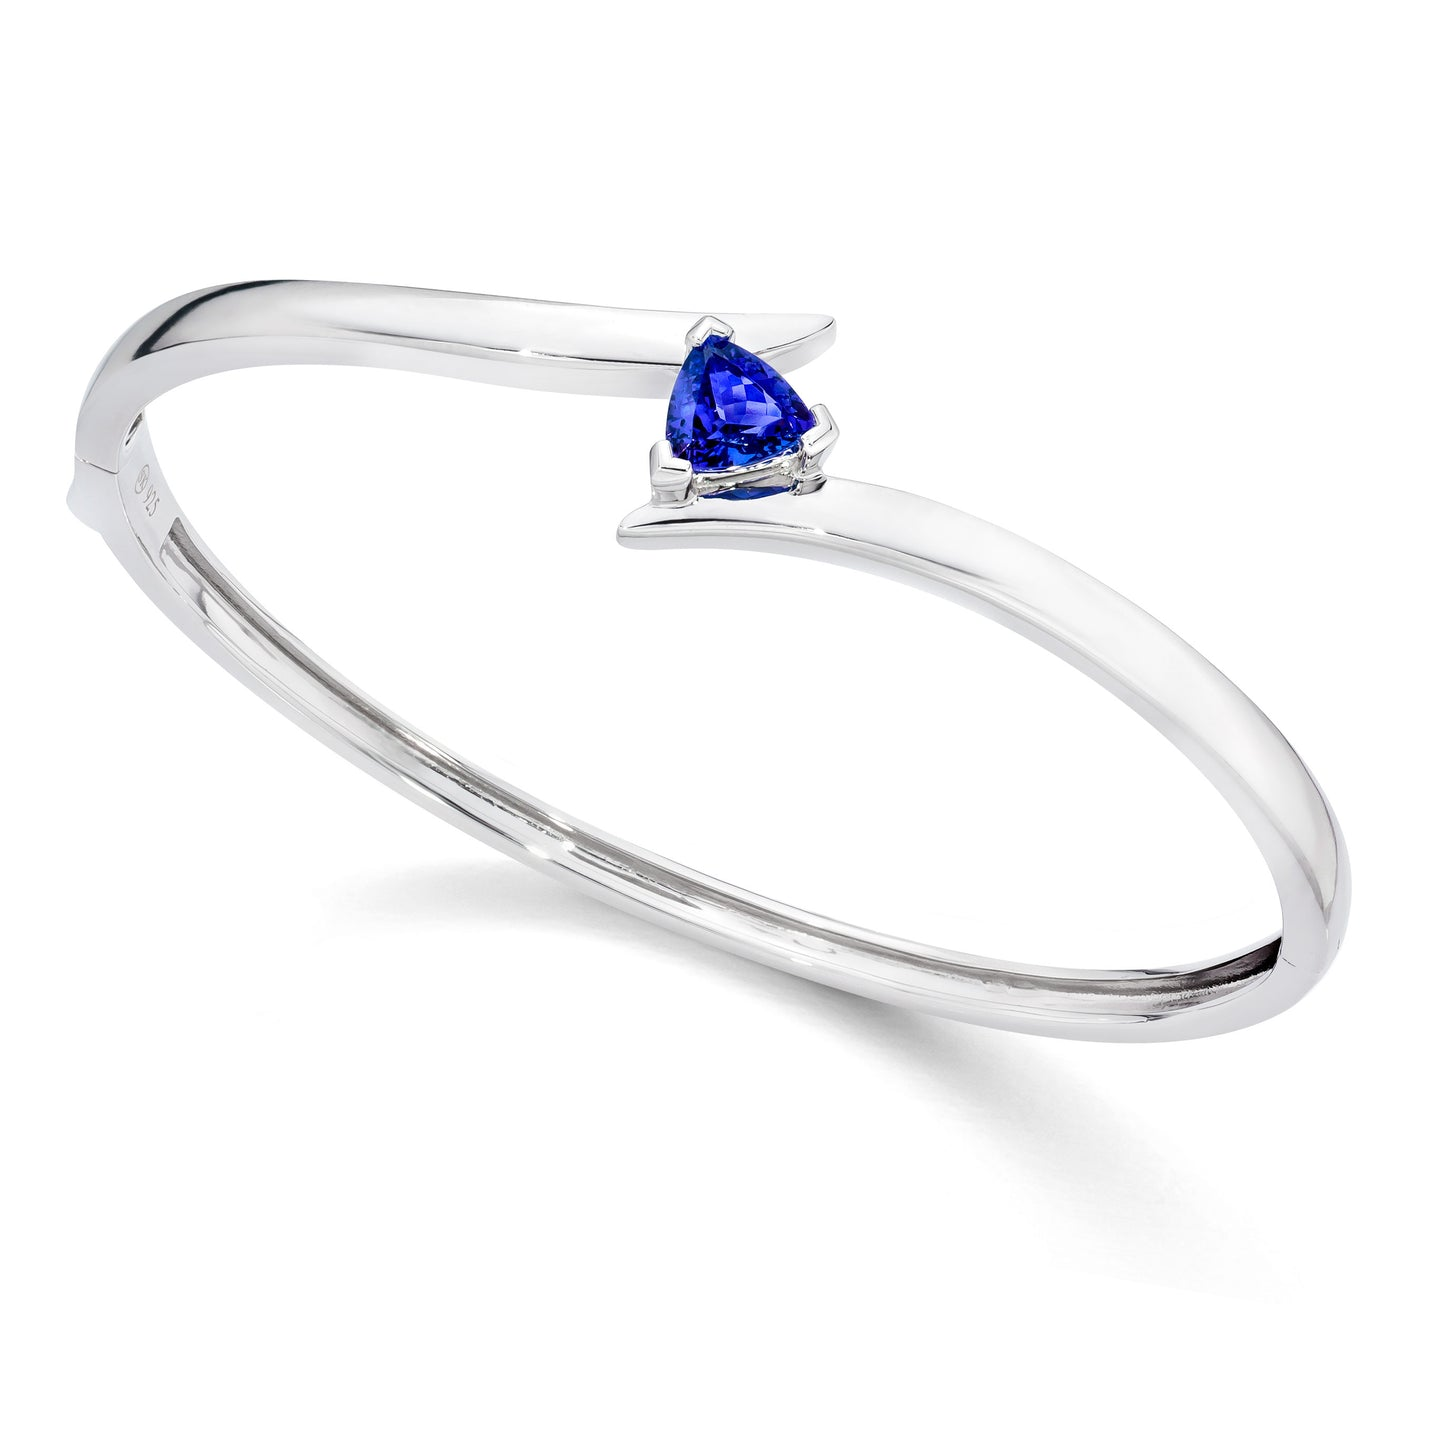 Safi Kilima Tanzanite Trillion Bangle